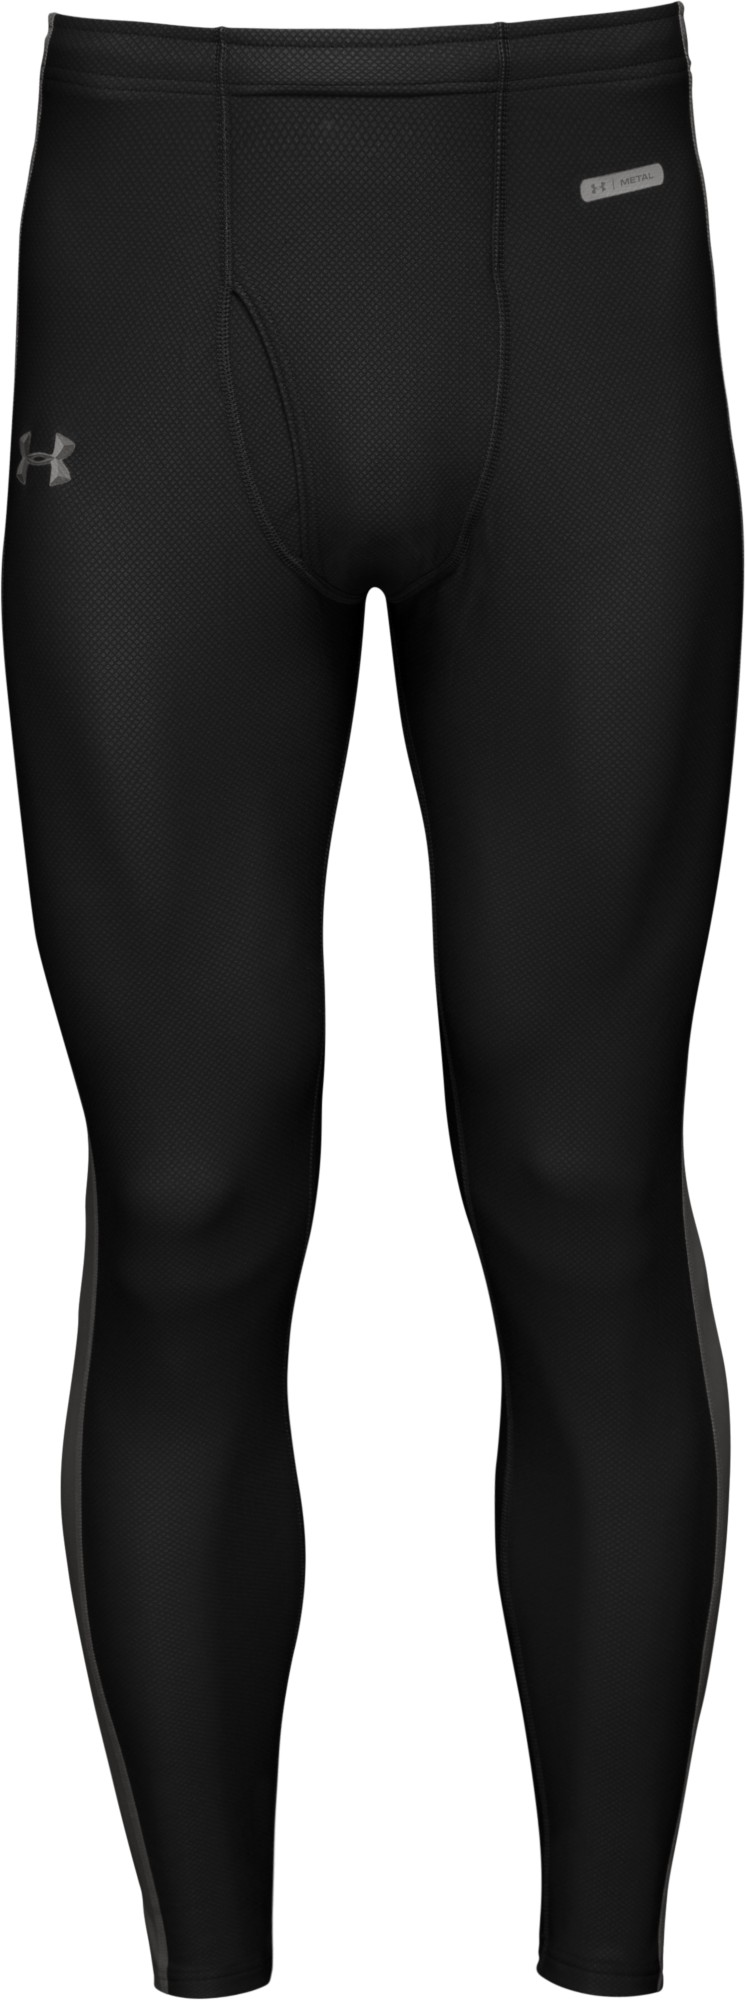 Under Armour ColdGear Metal Legging